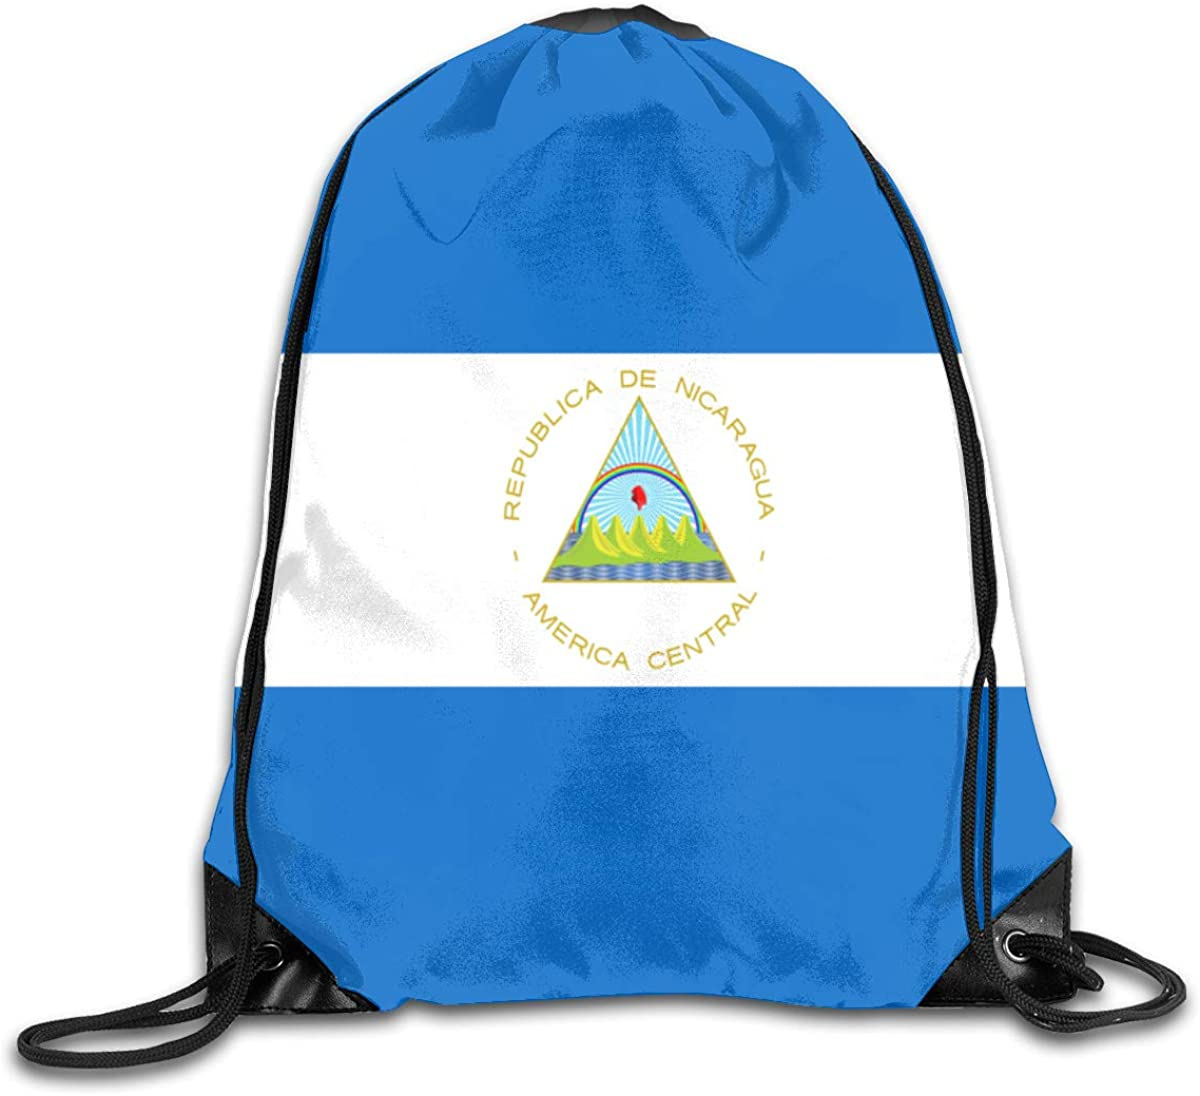 Flag Of Nicaragua Beam Mouth Backpack Pull Rope Shoulder Bag Outdoor Sports Leisure Bag